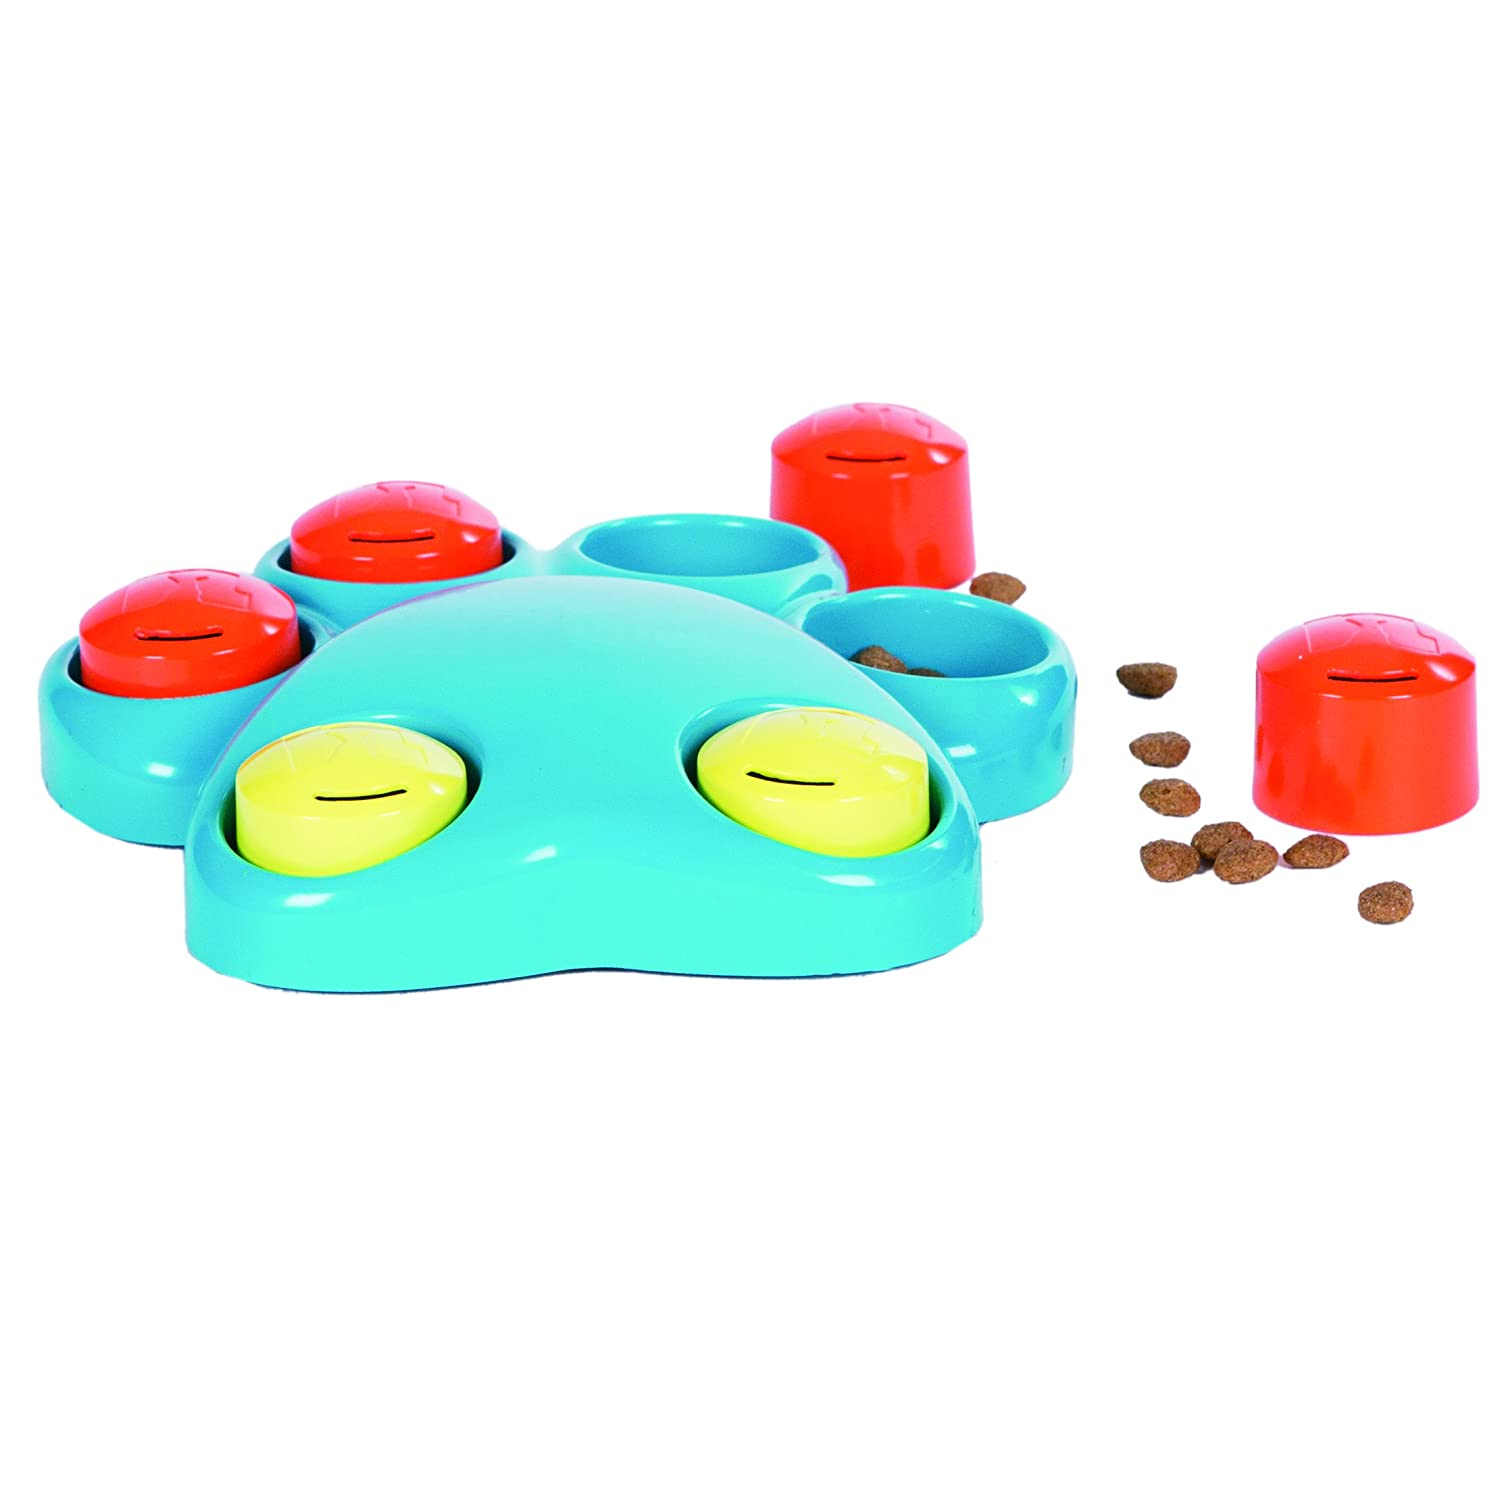 Best Stimulating Dog Toys The Most Durable Fun and Exciting Toys